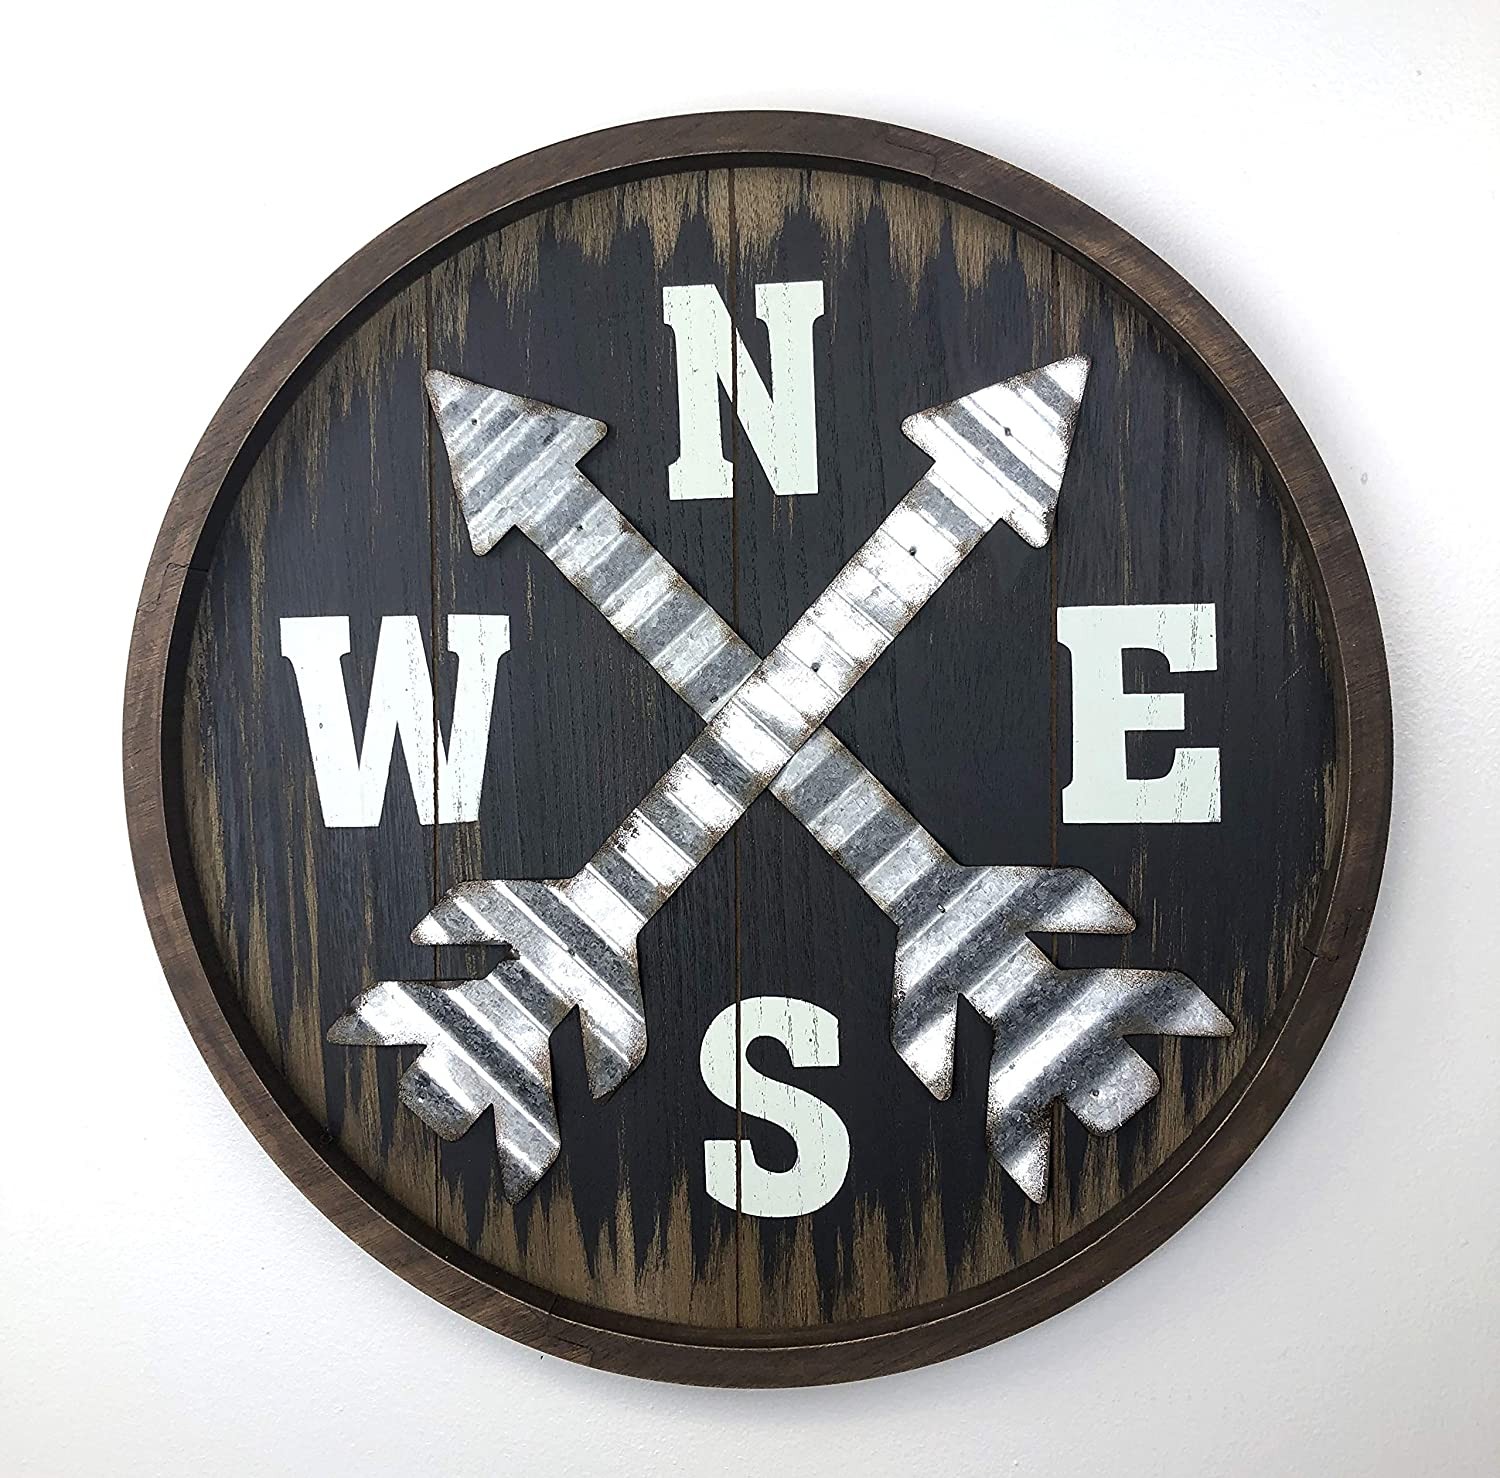 Parisloft Distressed Wood Compass Wall Signs,Wooden Round Compass(N,S,E,W) Wall Plaque 18 Inch